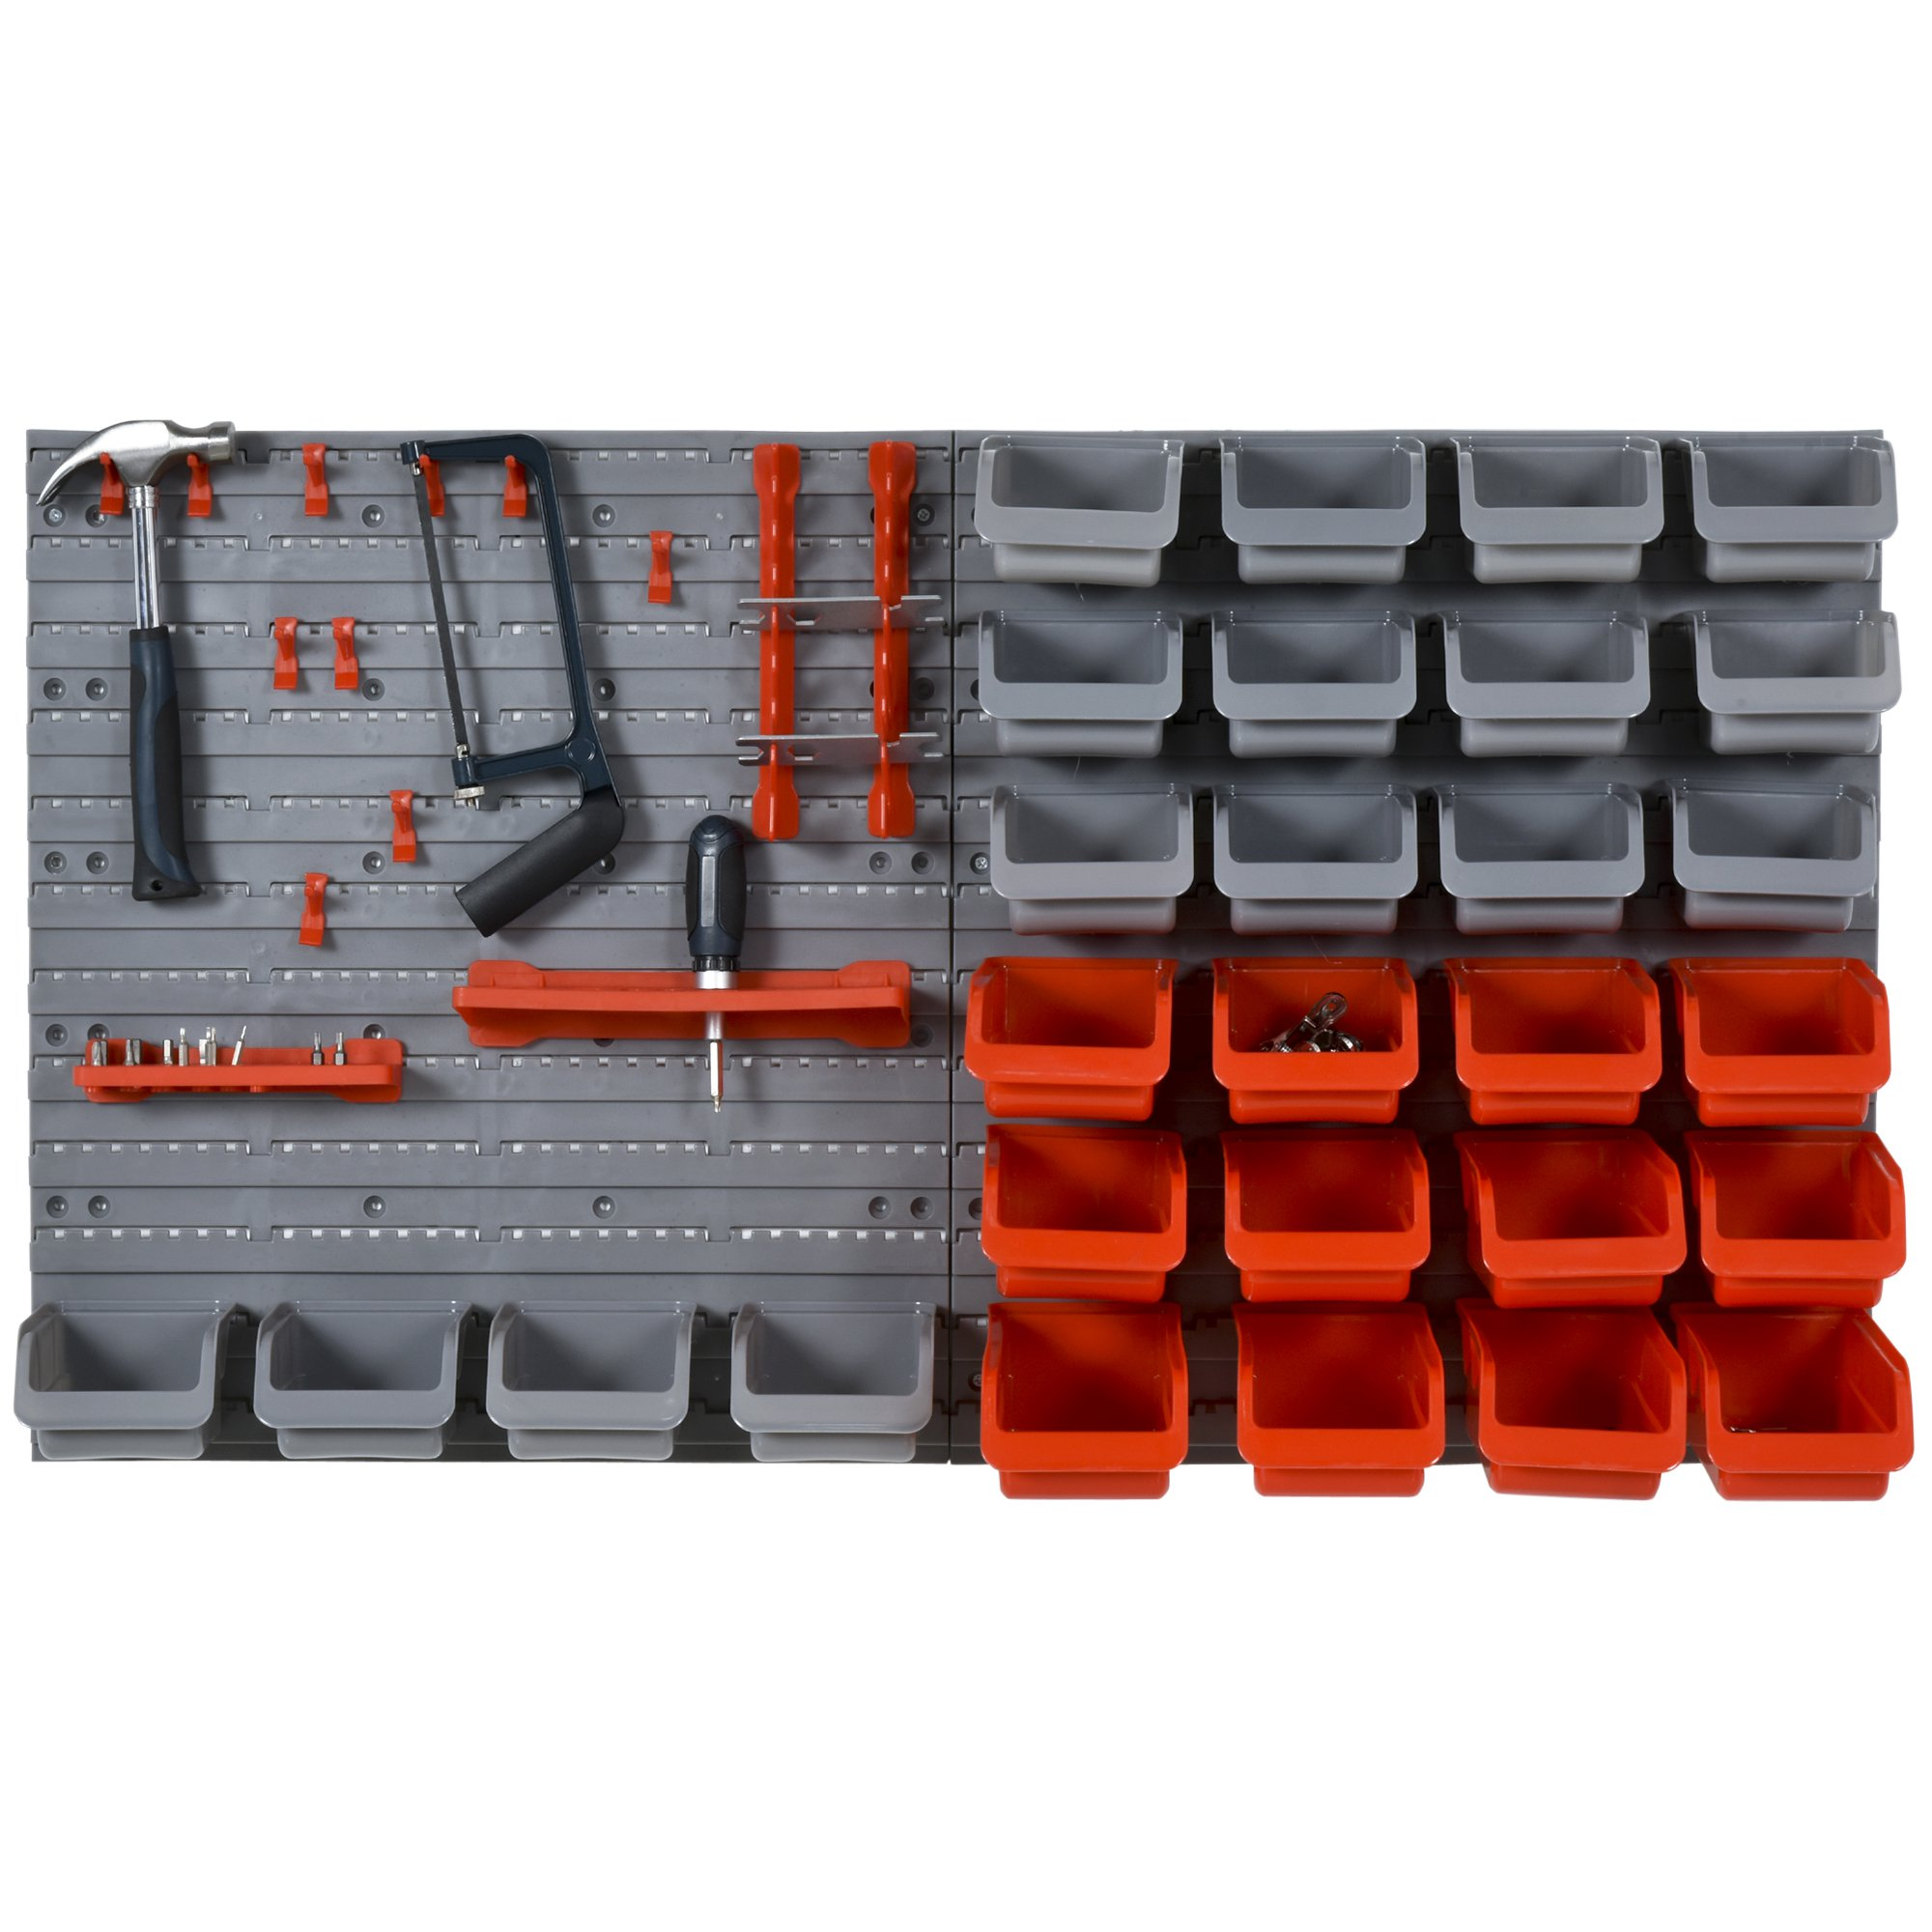 DURHAND PP Wall Mounted Tools & Hardware Storage Unit w/ Containers